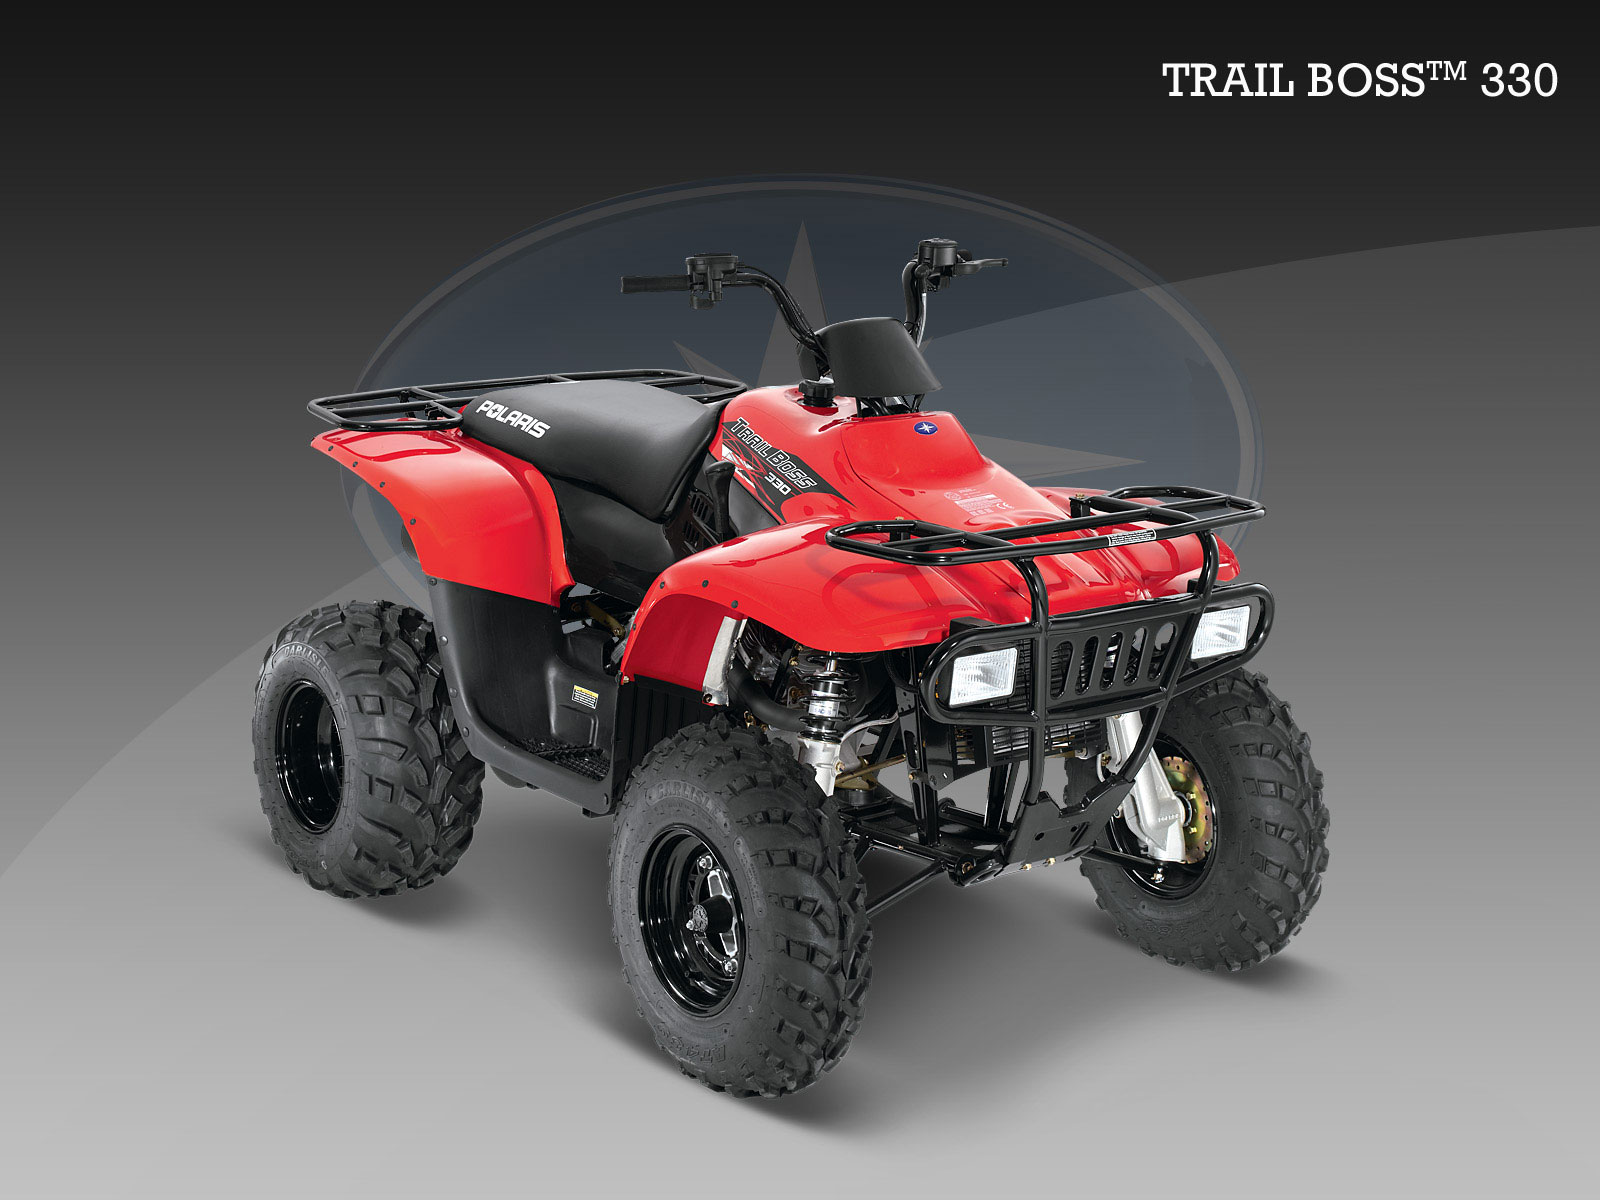 Polaris Trail Boss 330 2006 images #169515